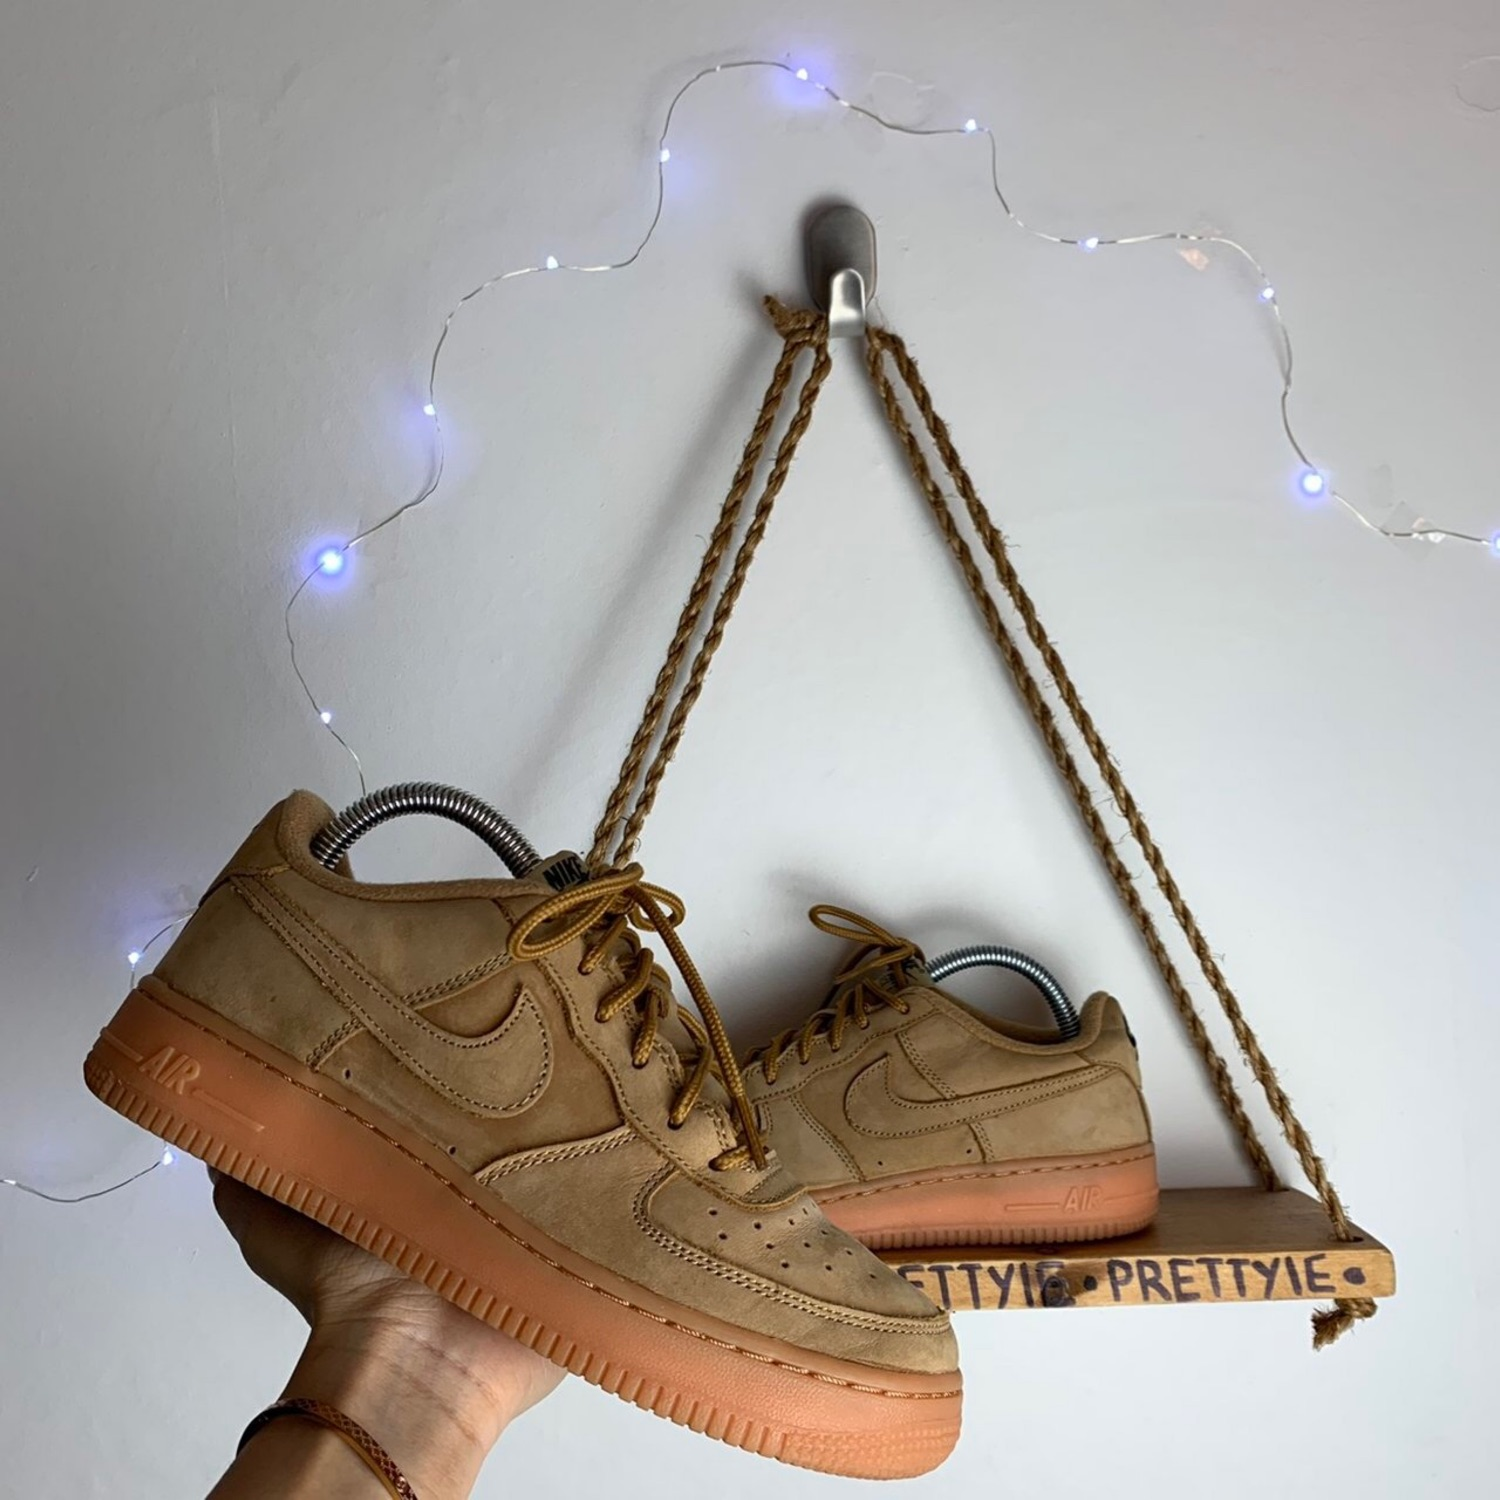 Air force 1 leather trainers Nike Beige size 38 EU in